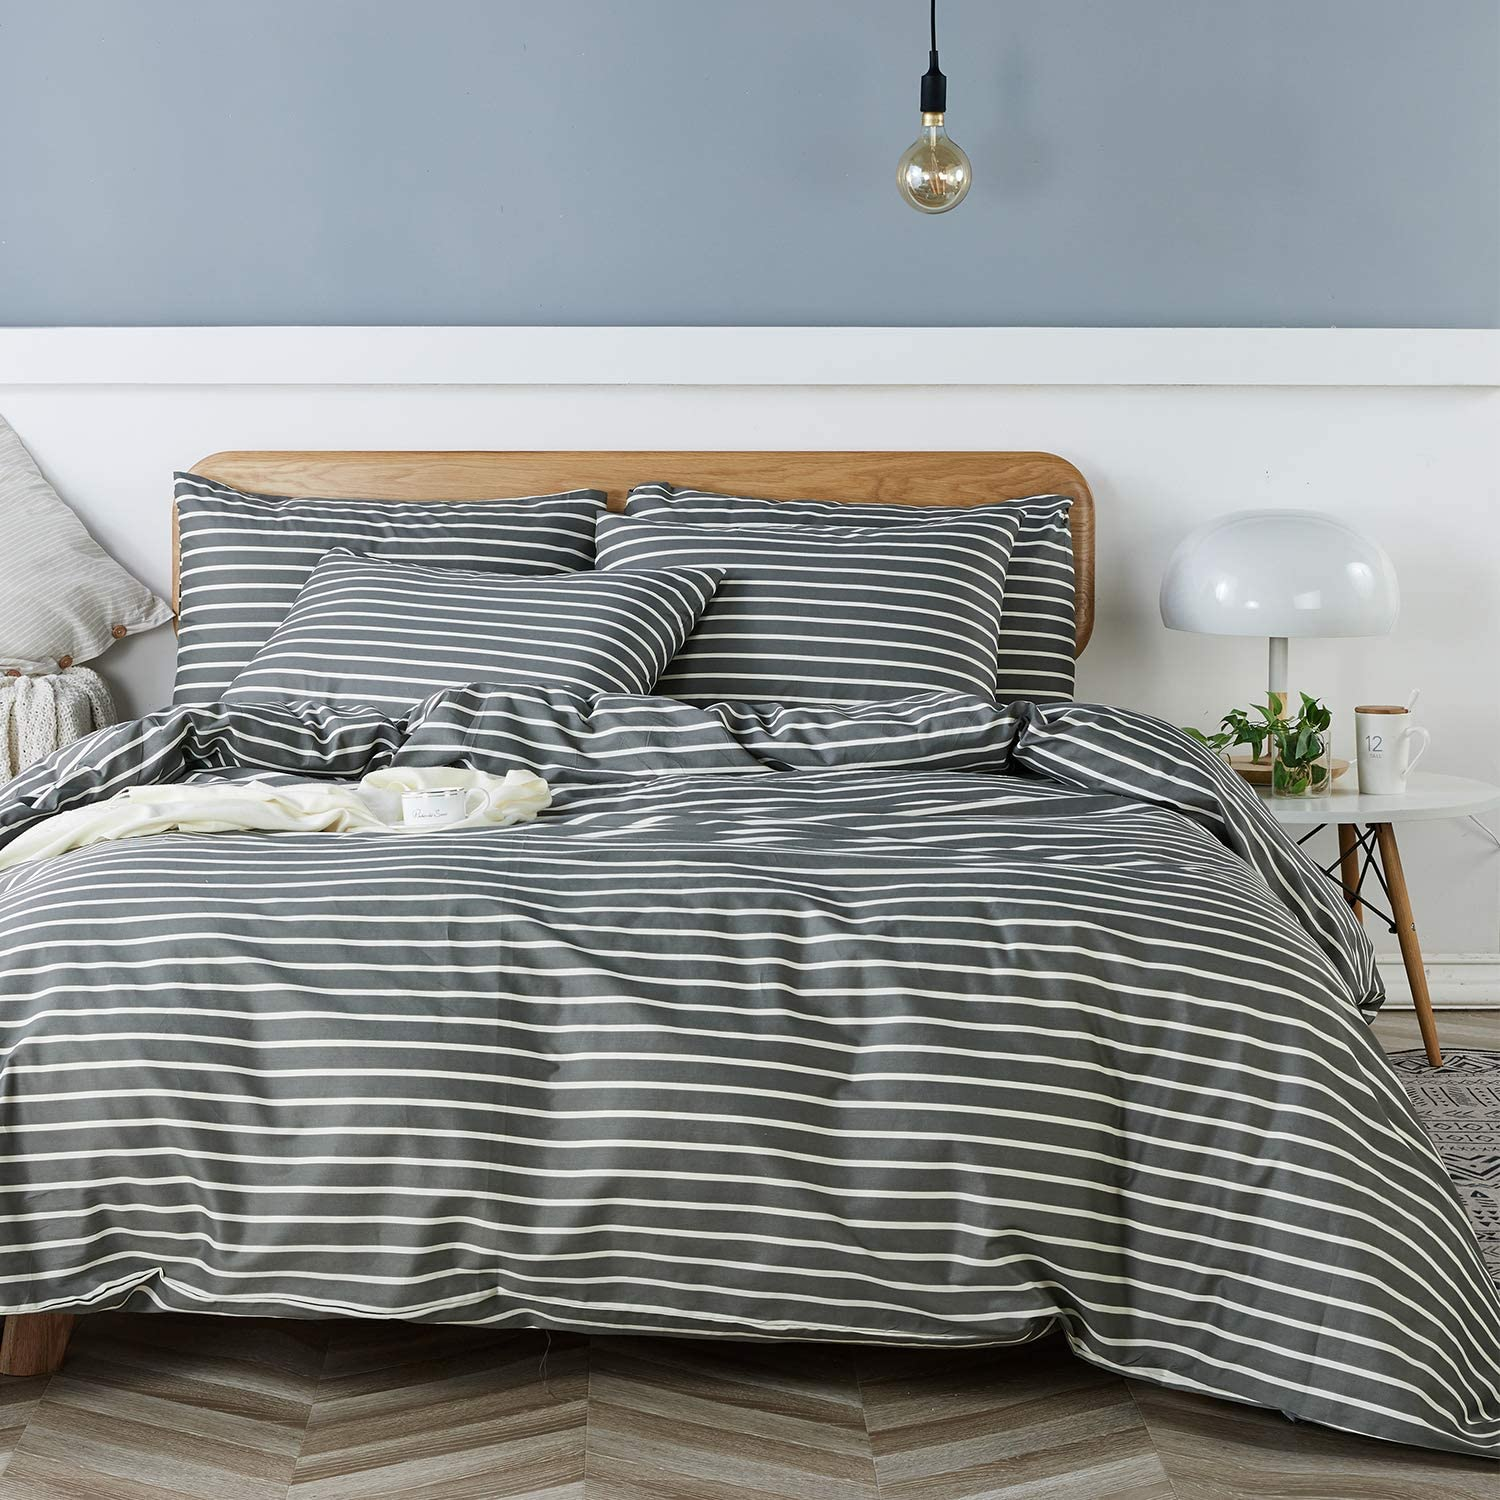 JELLYMONI 100% Natural Cotton 3pcs Striped Duvet Cover Sets, Dark Grey Duvet Cover with White Stripes Pattern Printed Comforter Cover, with Zipper Closure & Corner Ties(King Size)